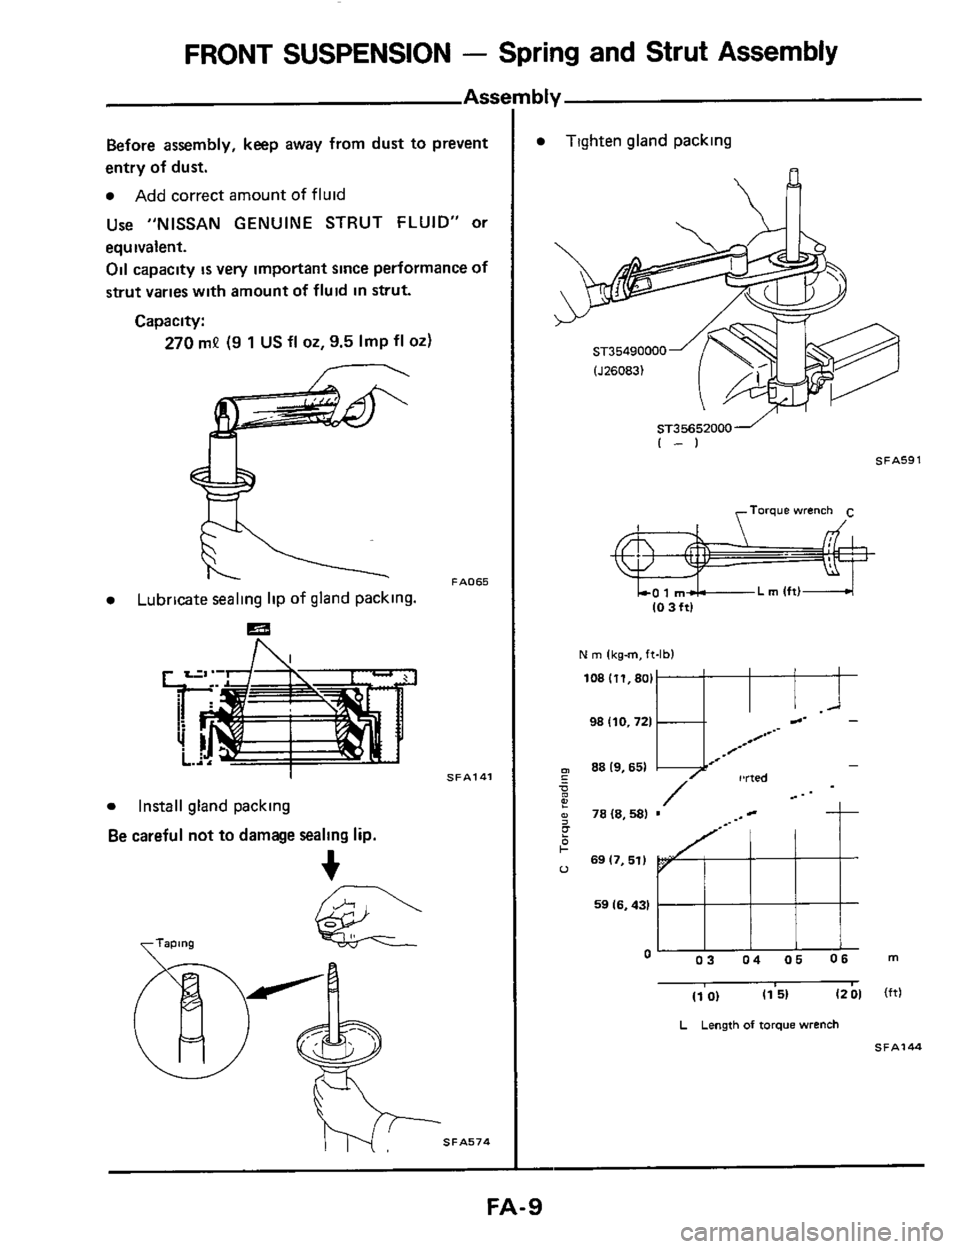 NISSAN 300ZX 1984 Z31 Front Suspension Workshop Manual, Page 9